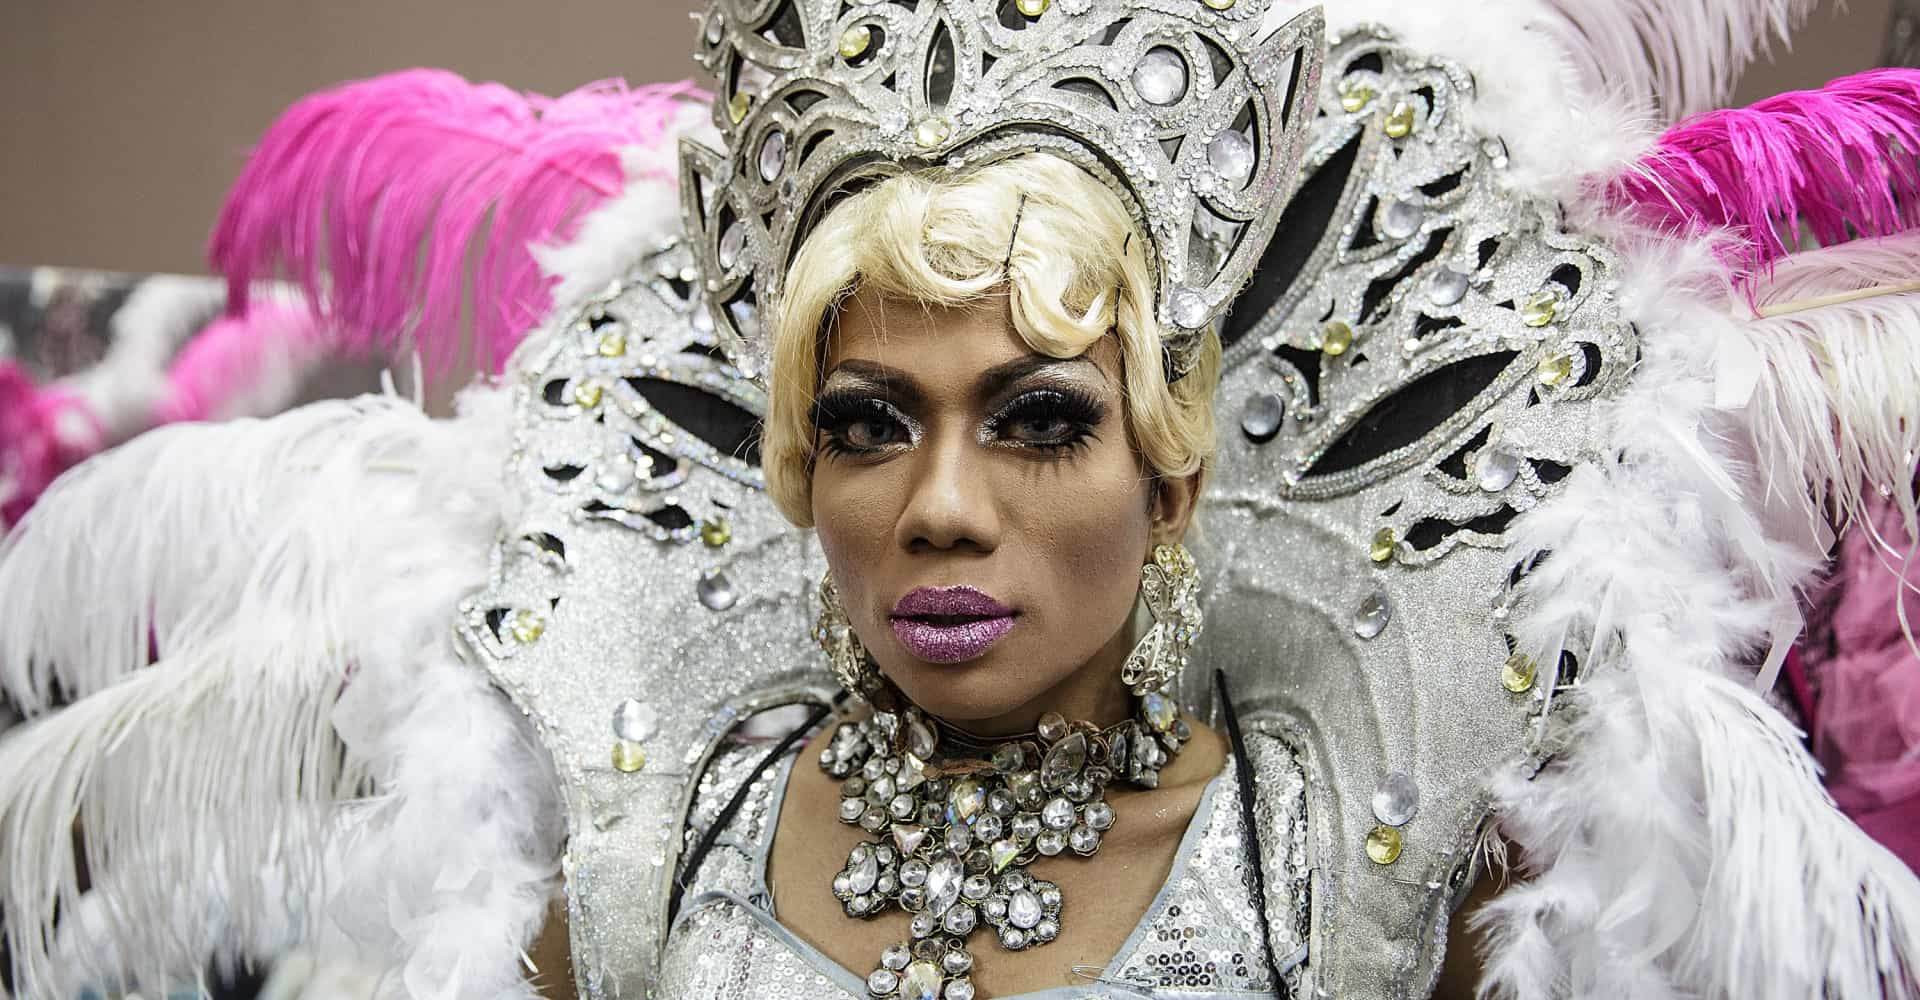 Life is a cabaret for Bali's drag queens